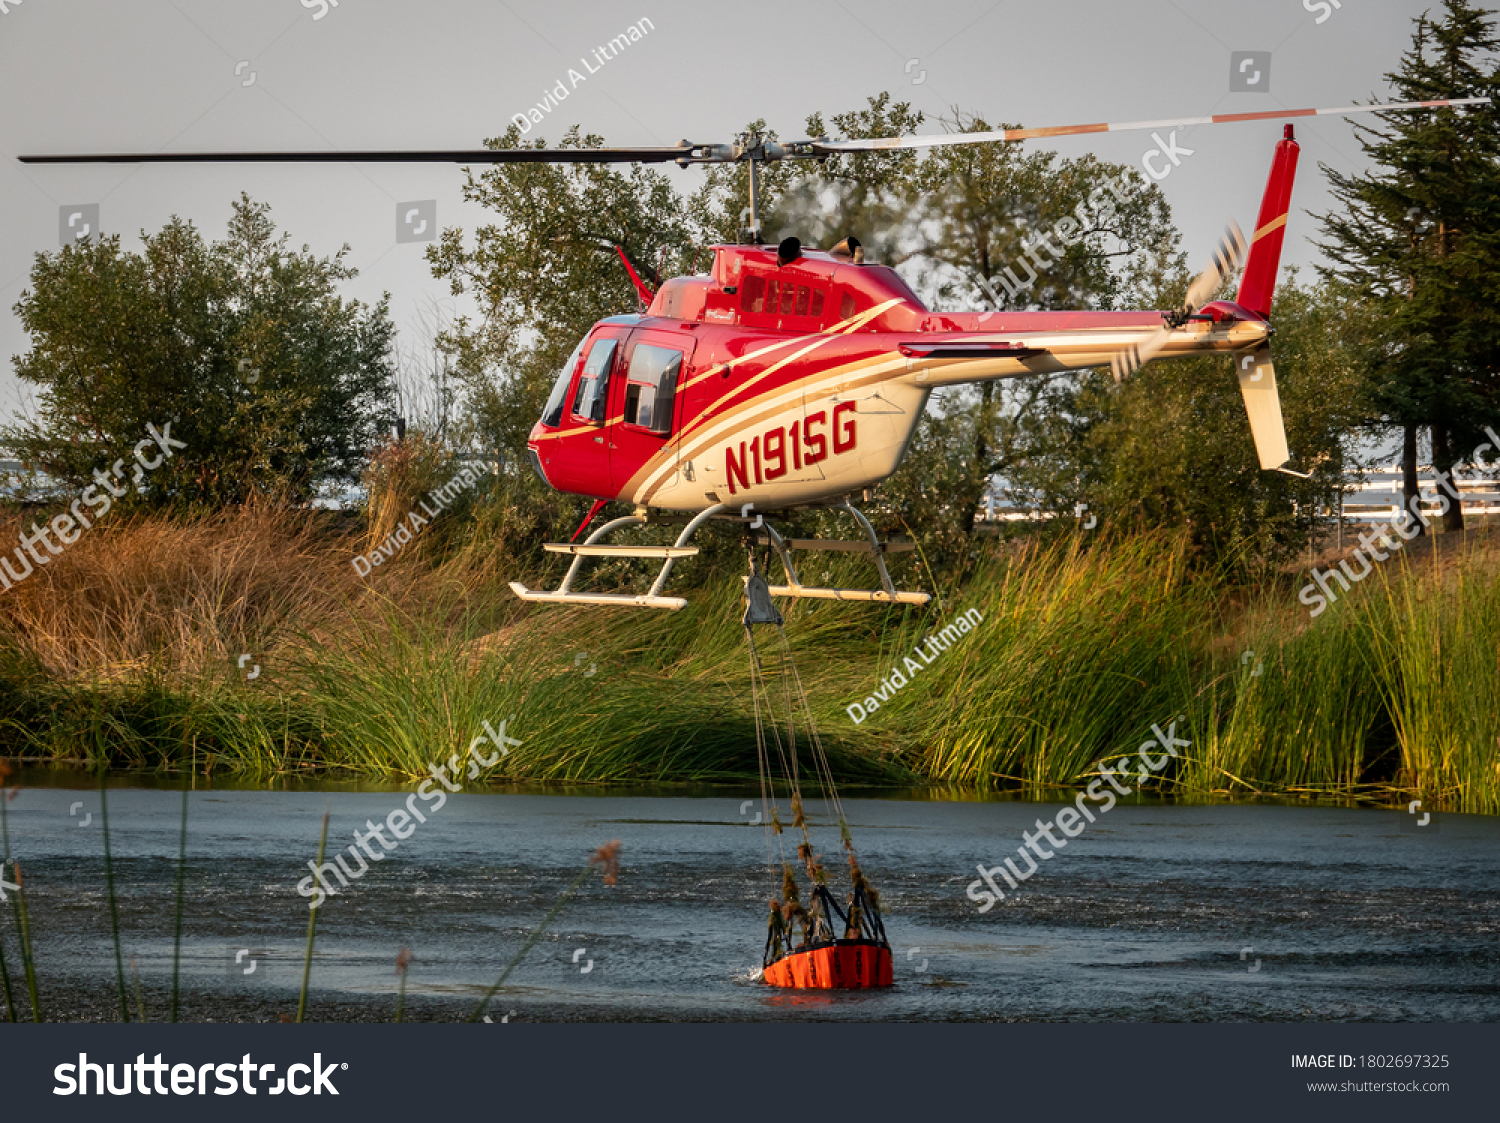 """Salinas, California - August 17, 2020:  A Cal Fire helicopter pilot collects a bucket of water from a pond to douse the """"River Fire"""" in the hills Monterey County of the central coast."""